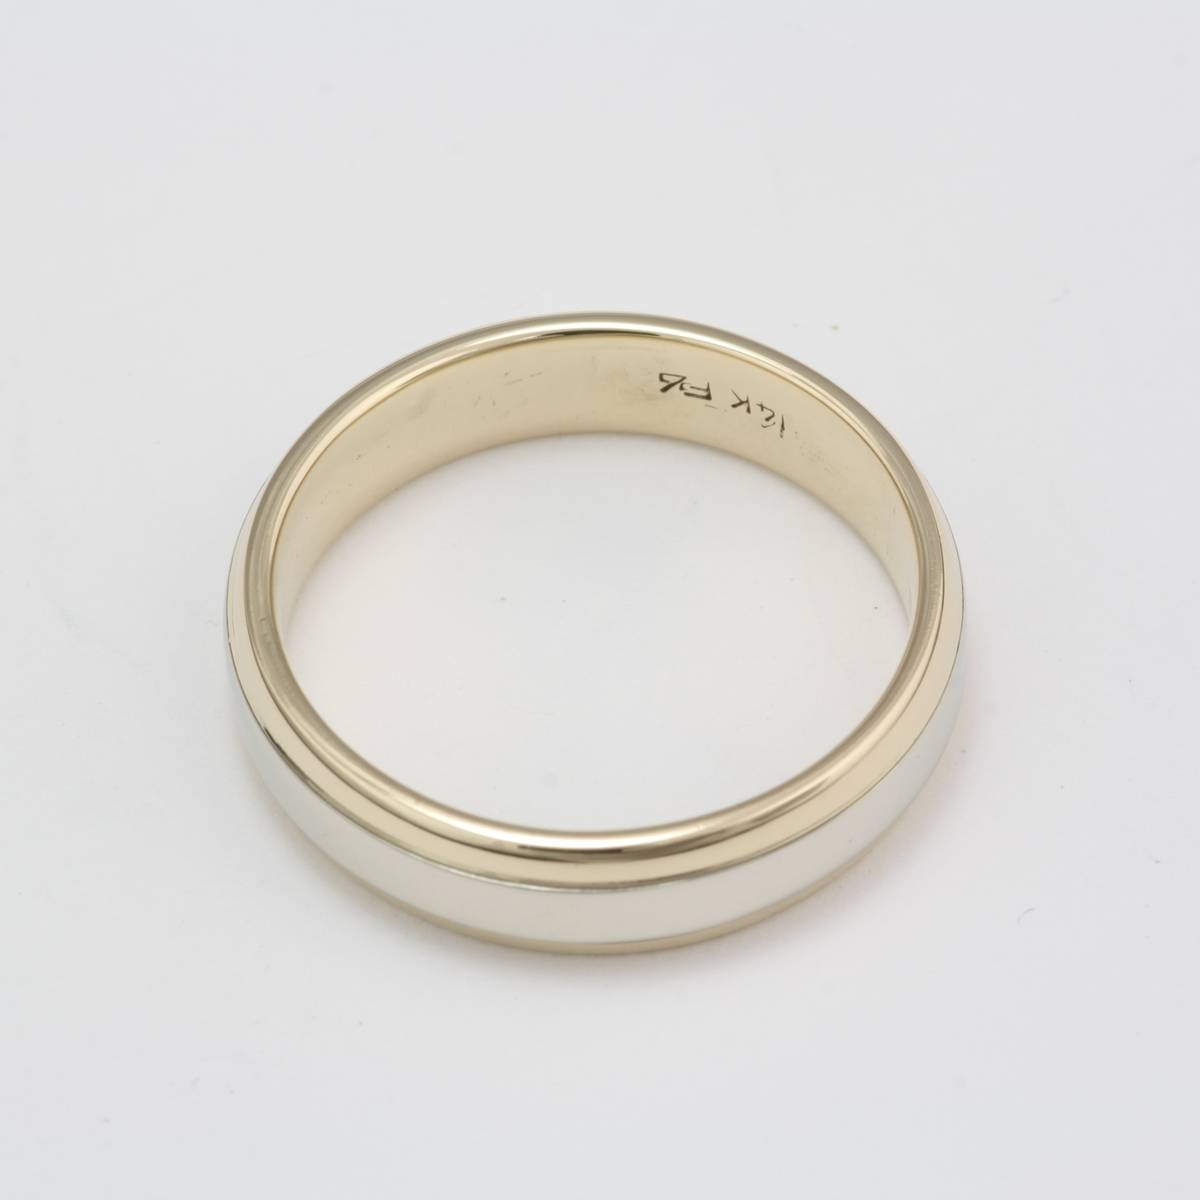 Owned 14 Karat White And Yellow Gold Wedding Band With Regard To 14 Carat Gold Wedding Bands (View 8 of 15)